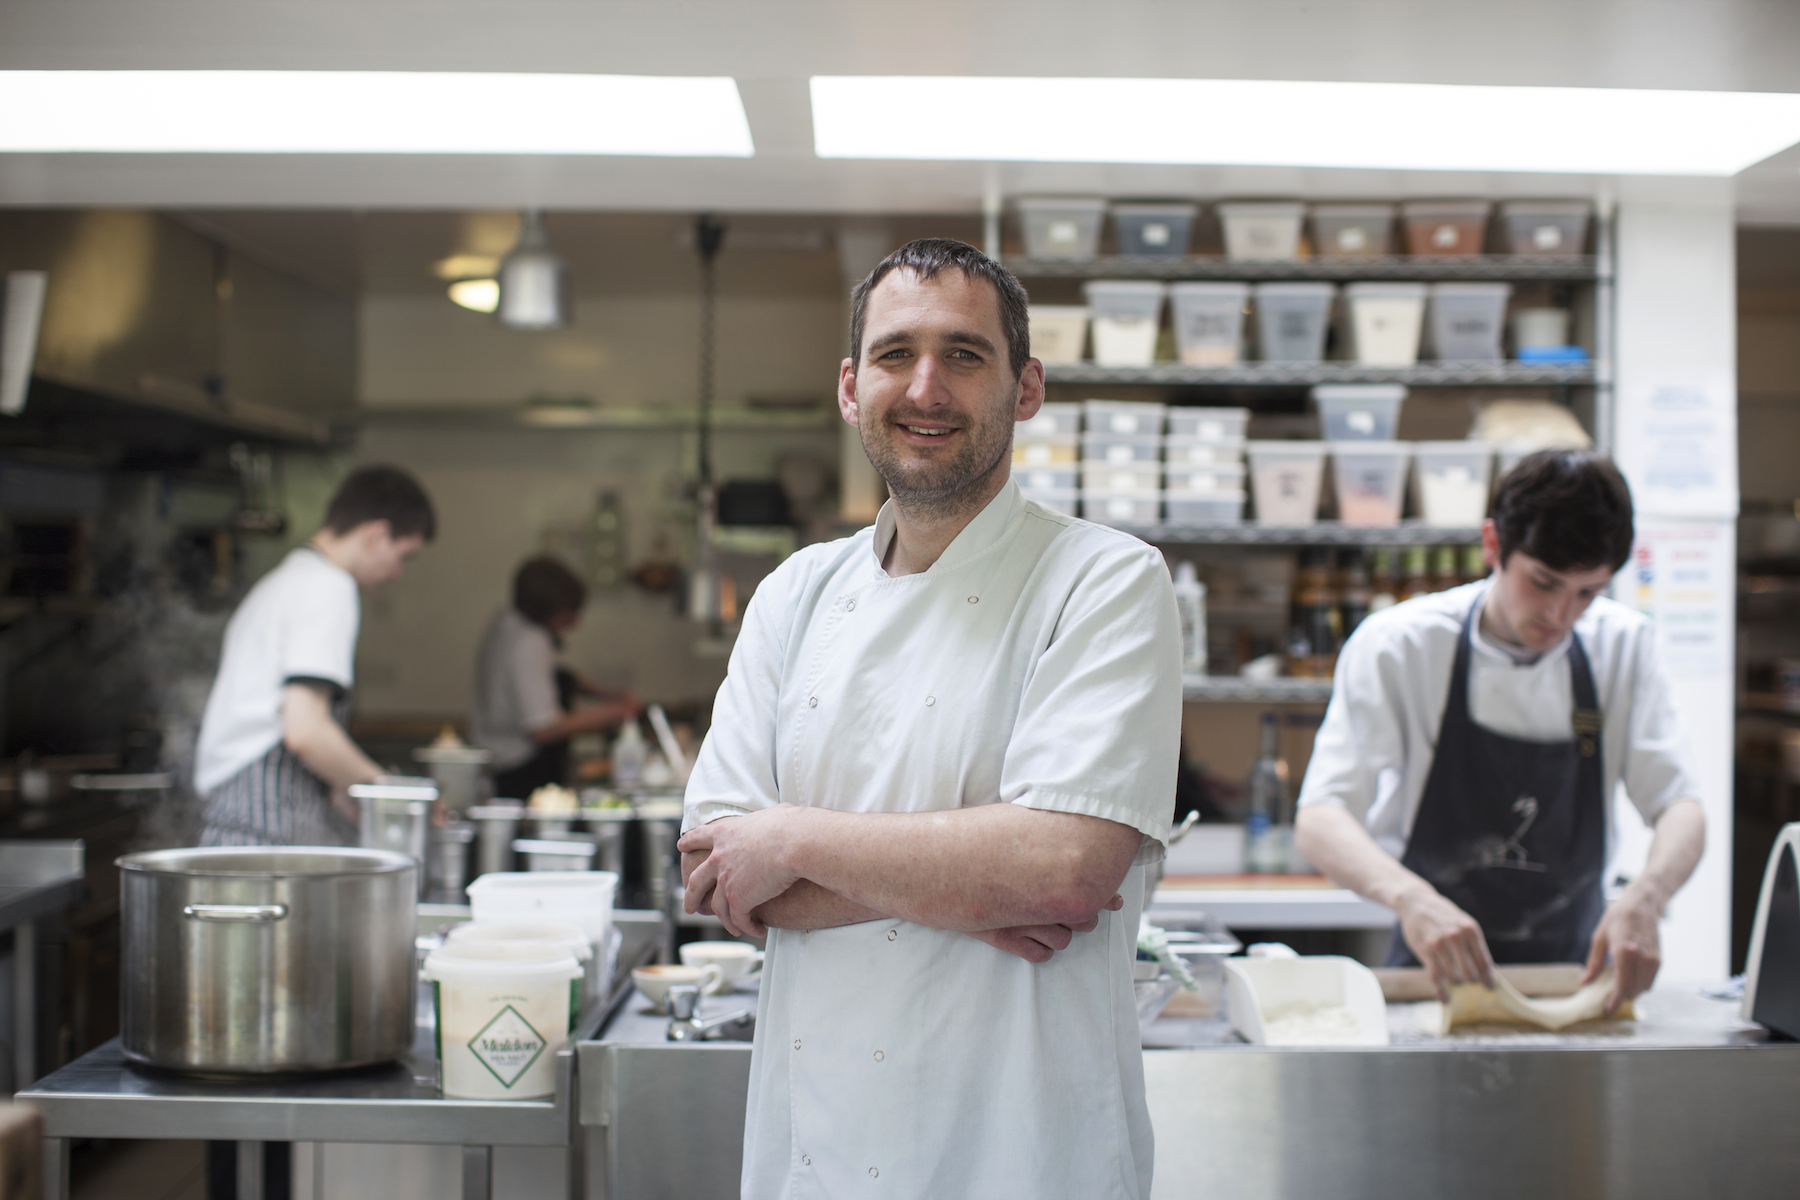 Scott Davies is the new head chef at the Three Chimneys